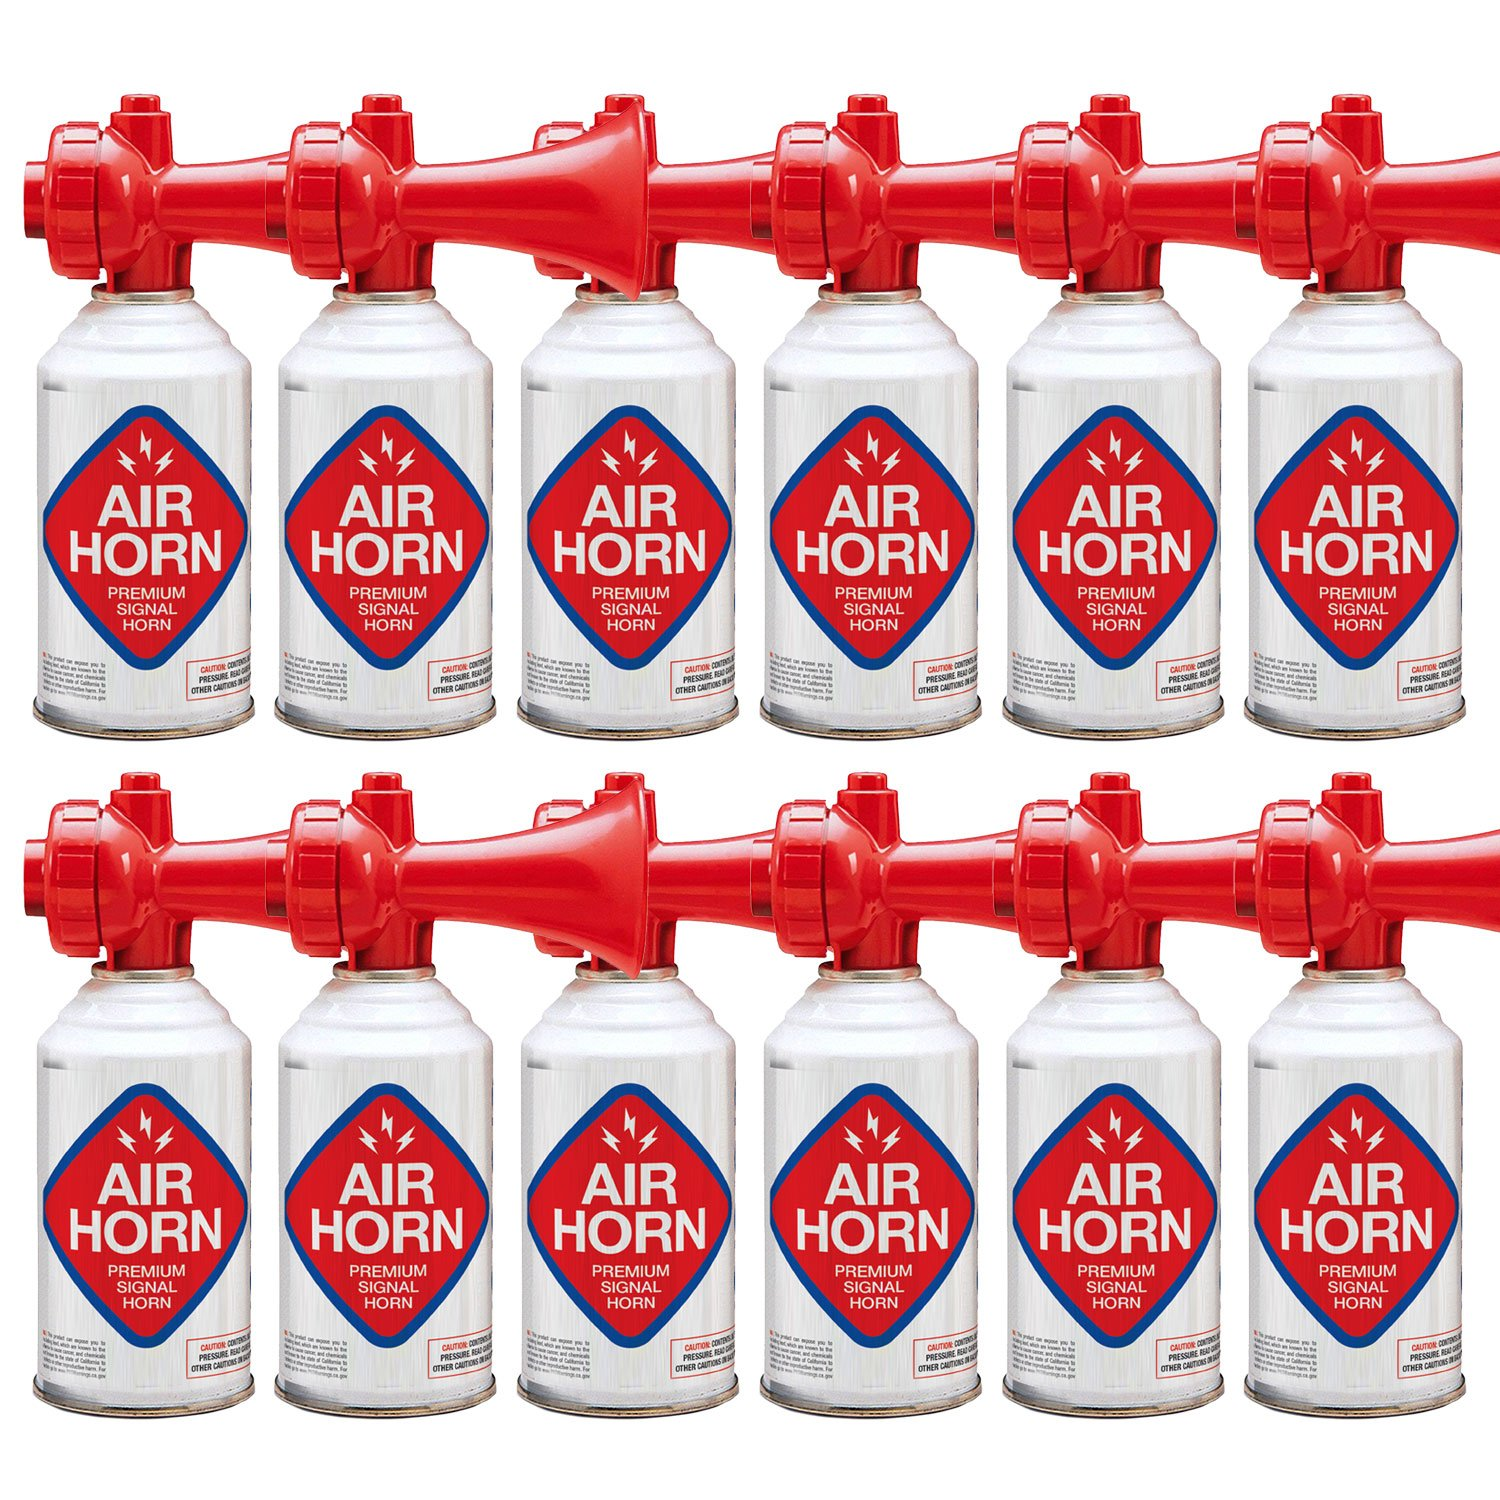 Air Horn for Boating, Sports, Safety. Loud & Effective Boat Signal & Shoreline Marine USCG Rated - Appropriate for Any Purpose - Non-Flammable, Ozone Safe. (12-Pack 8oz) by K3 Brands